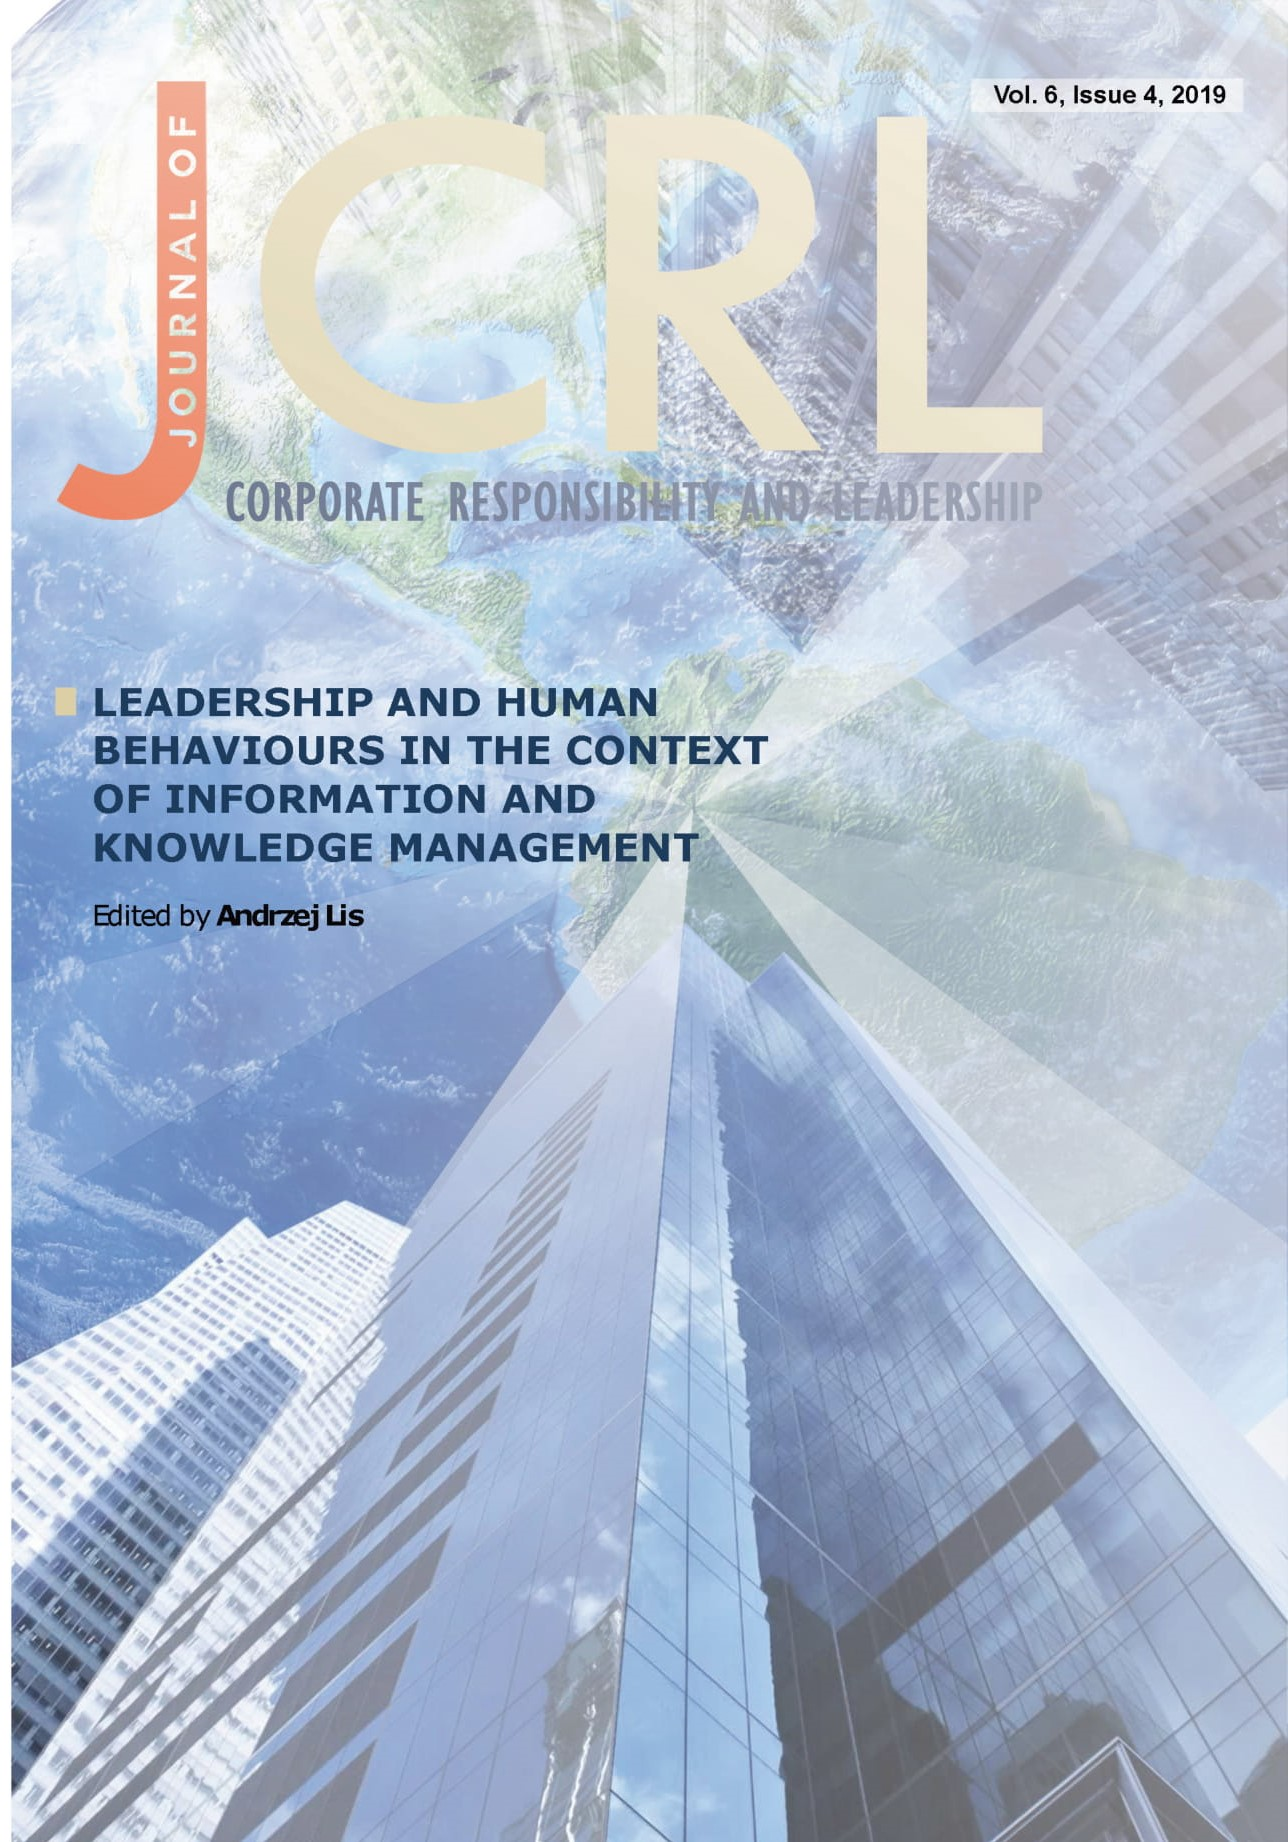 View Vol. 6 No. 4 (2019): Leadership and Human Behaviours in the Context of Information and Knowledge Management